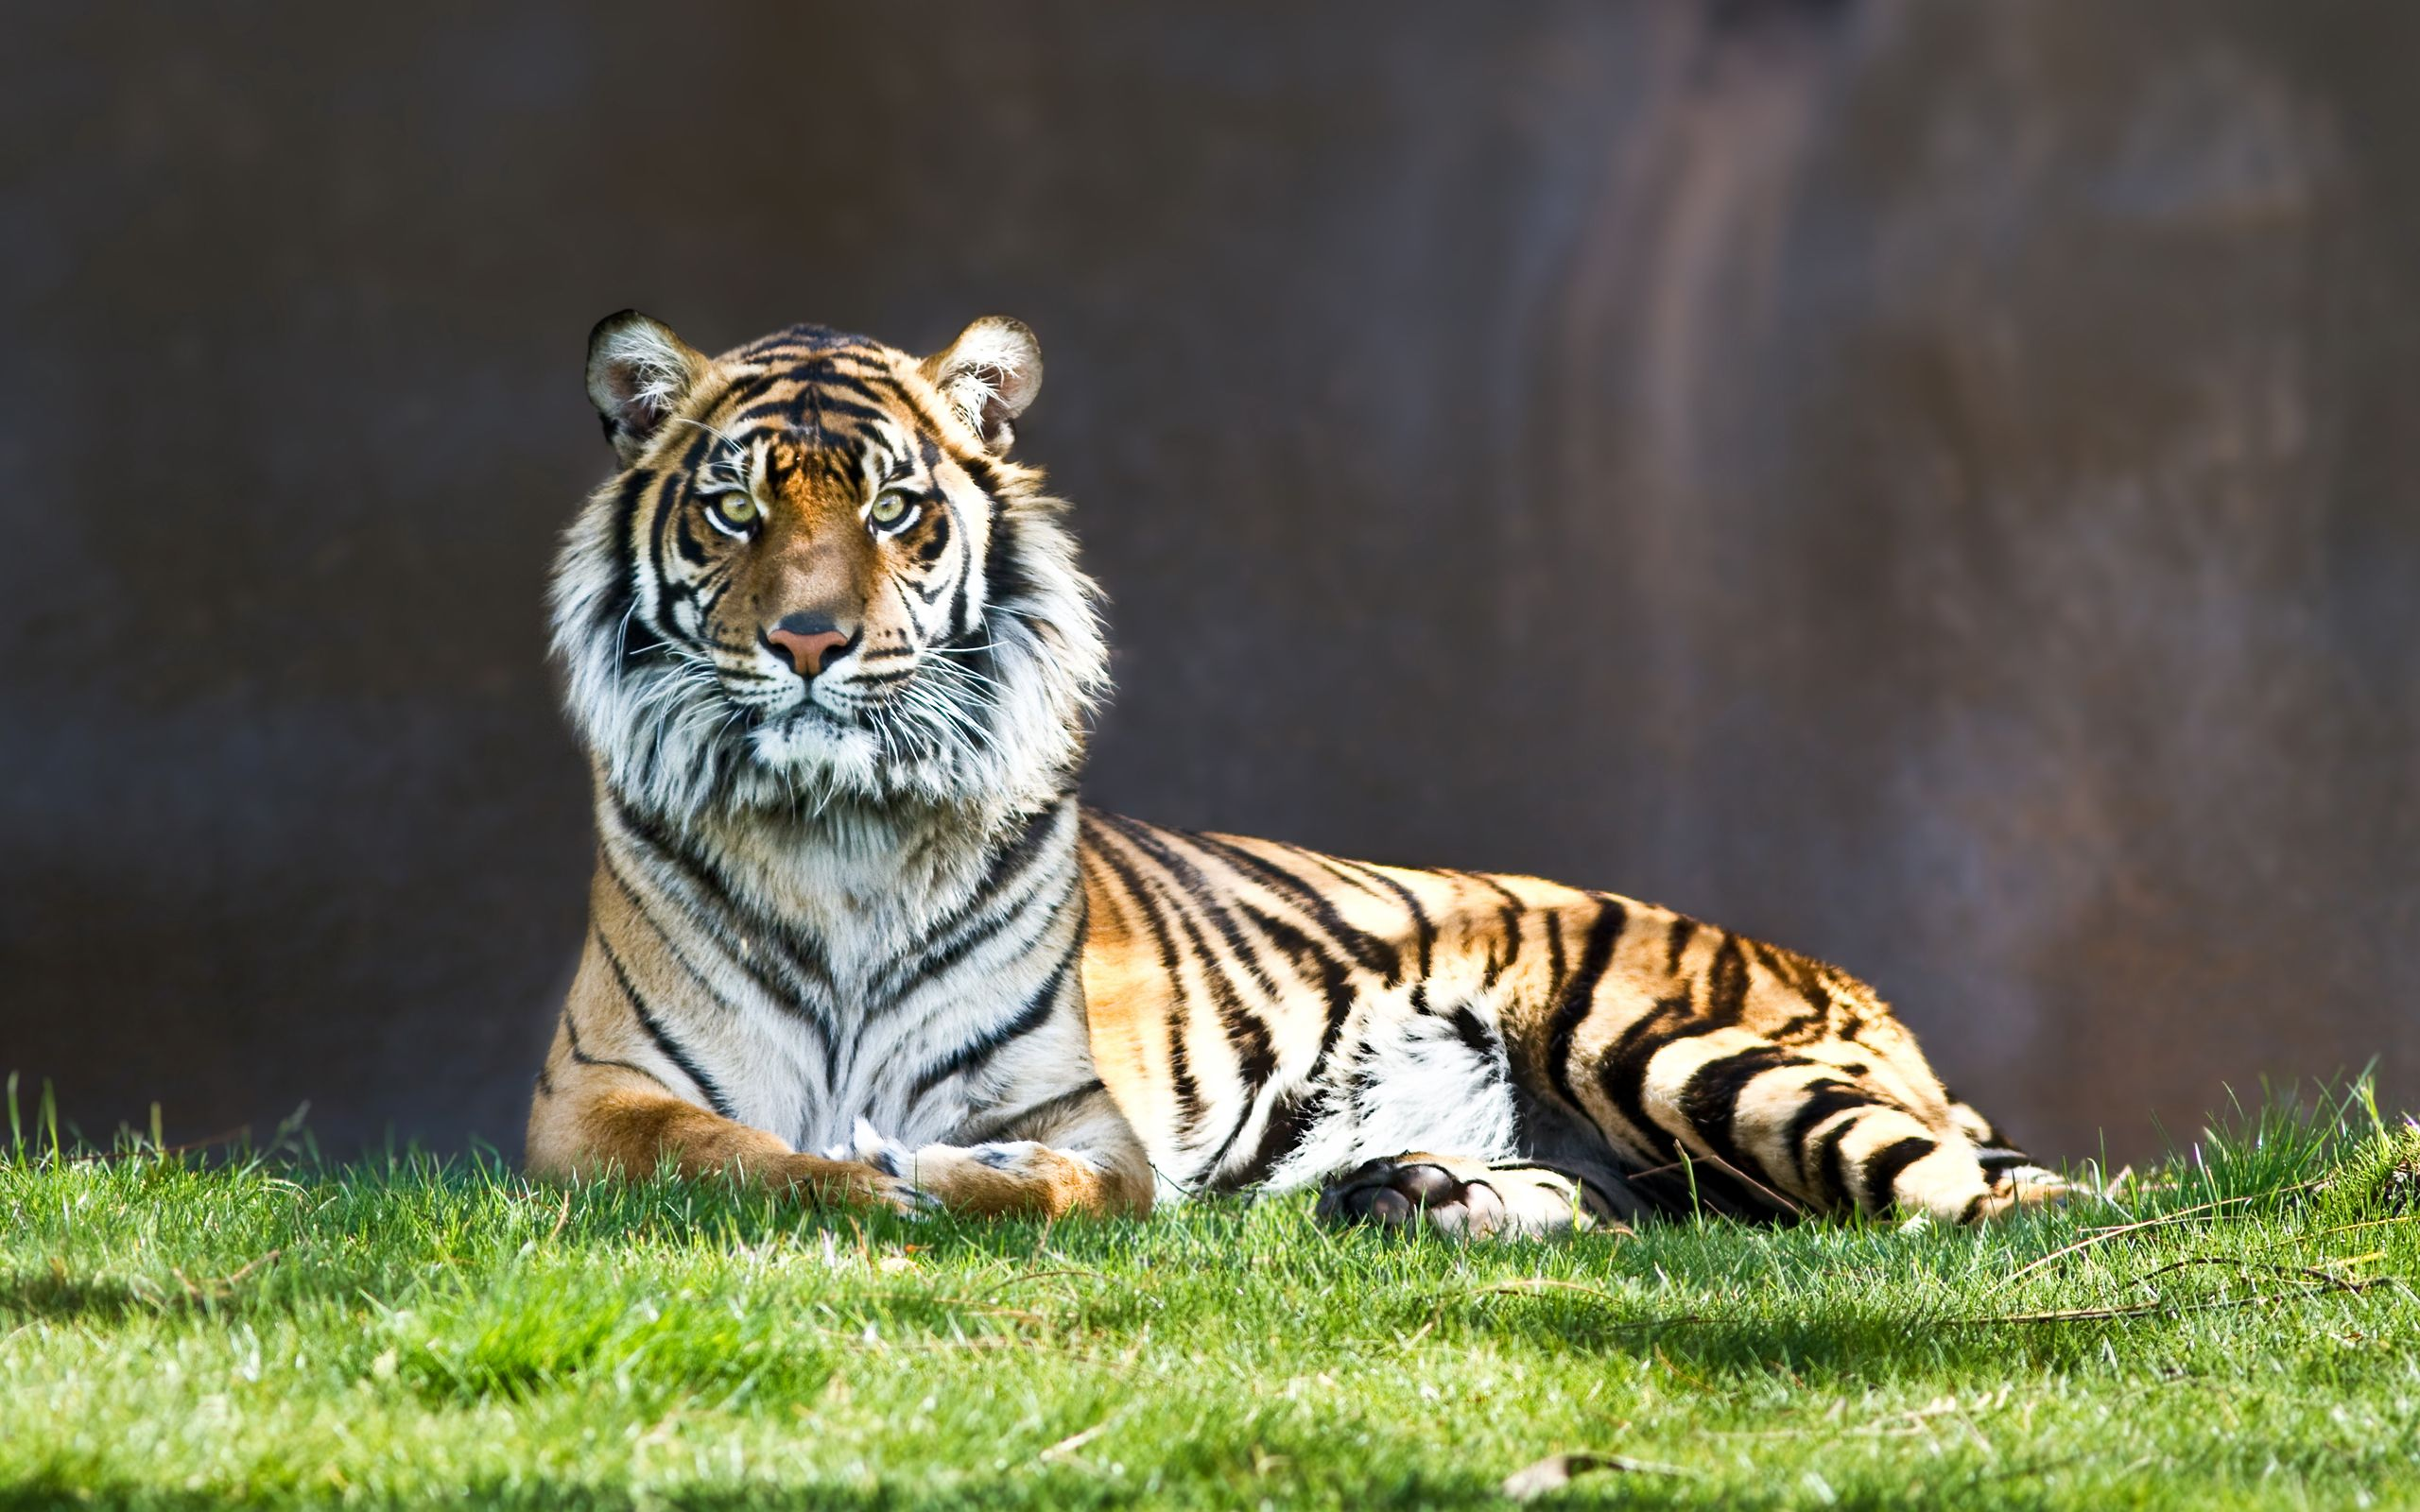 tiger staring wallpaper - http://www.56pic/animals-birds/tiger